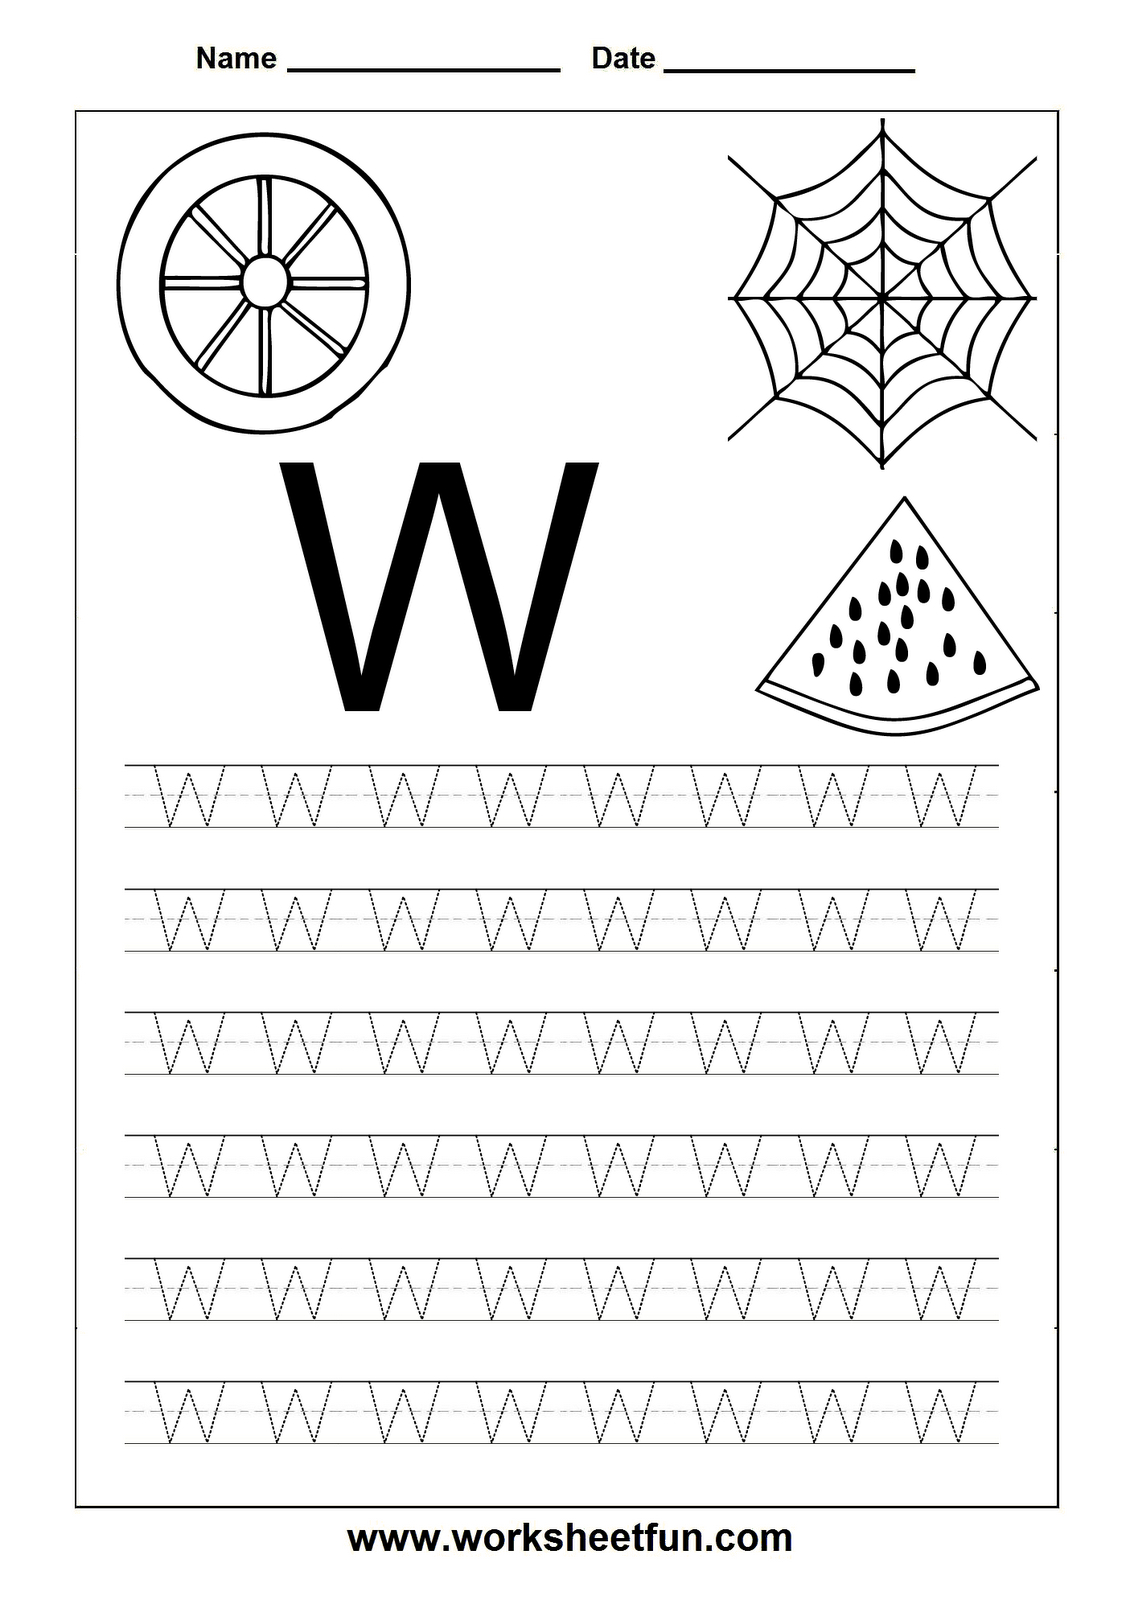 Free Printable Worksheets: Letter Tracing Worksheets For for Tracing Letters Words Worksheets